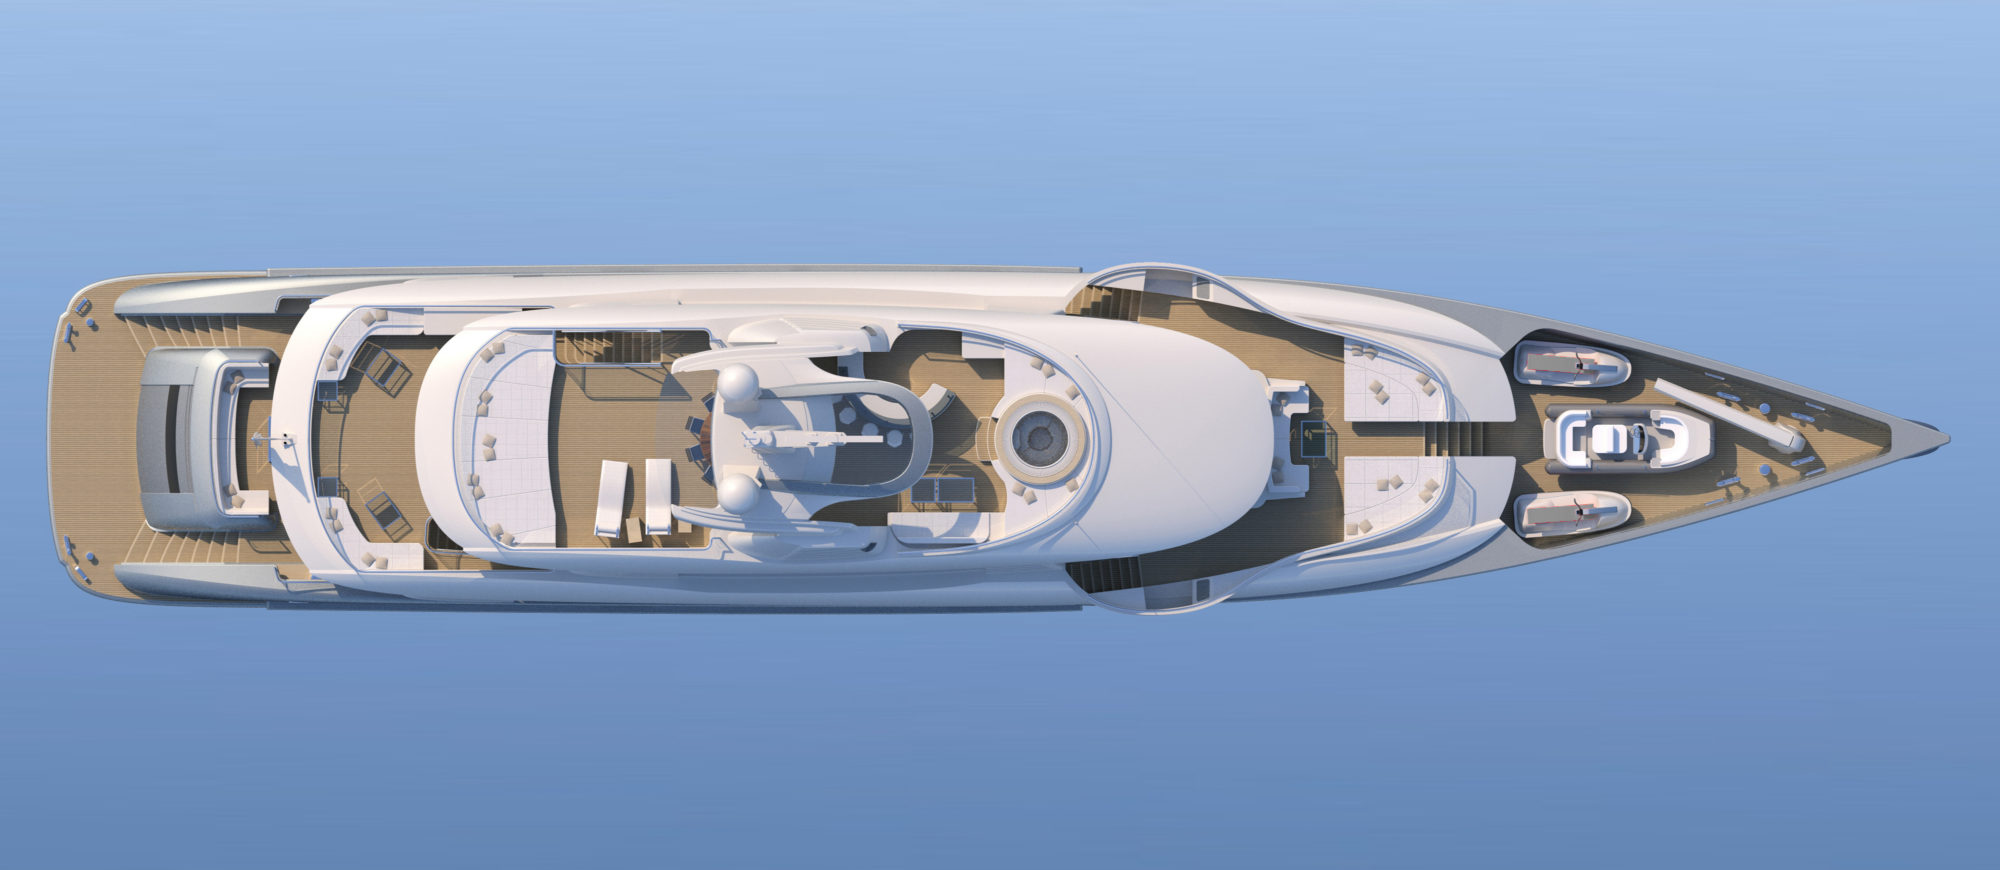 Conrad C166 Superyacht Concept Vallicelli Visualisation Top Profile